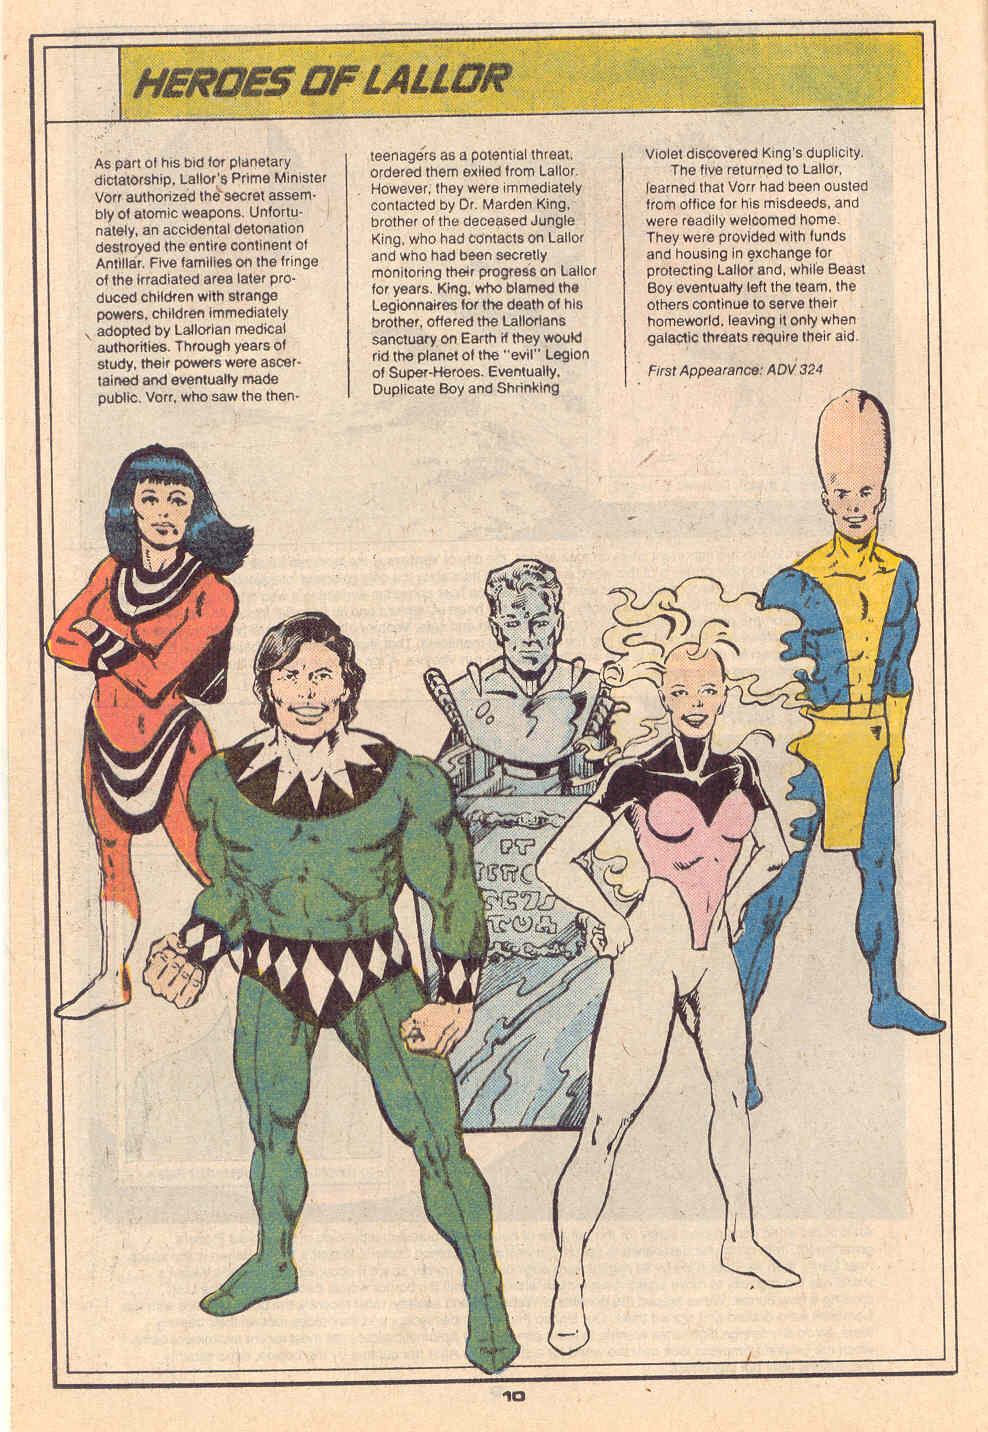 Heroes of Lallor by Jim Valentino and George Perez - Who's Who in the Legion of Super-Heroes #3